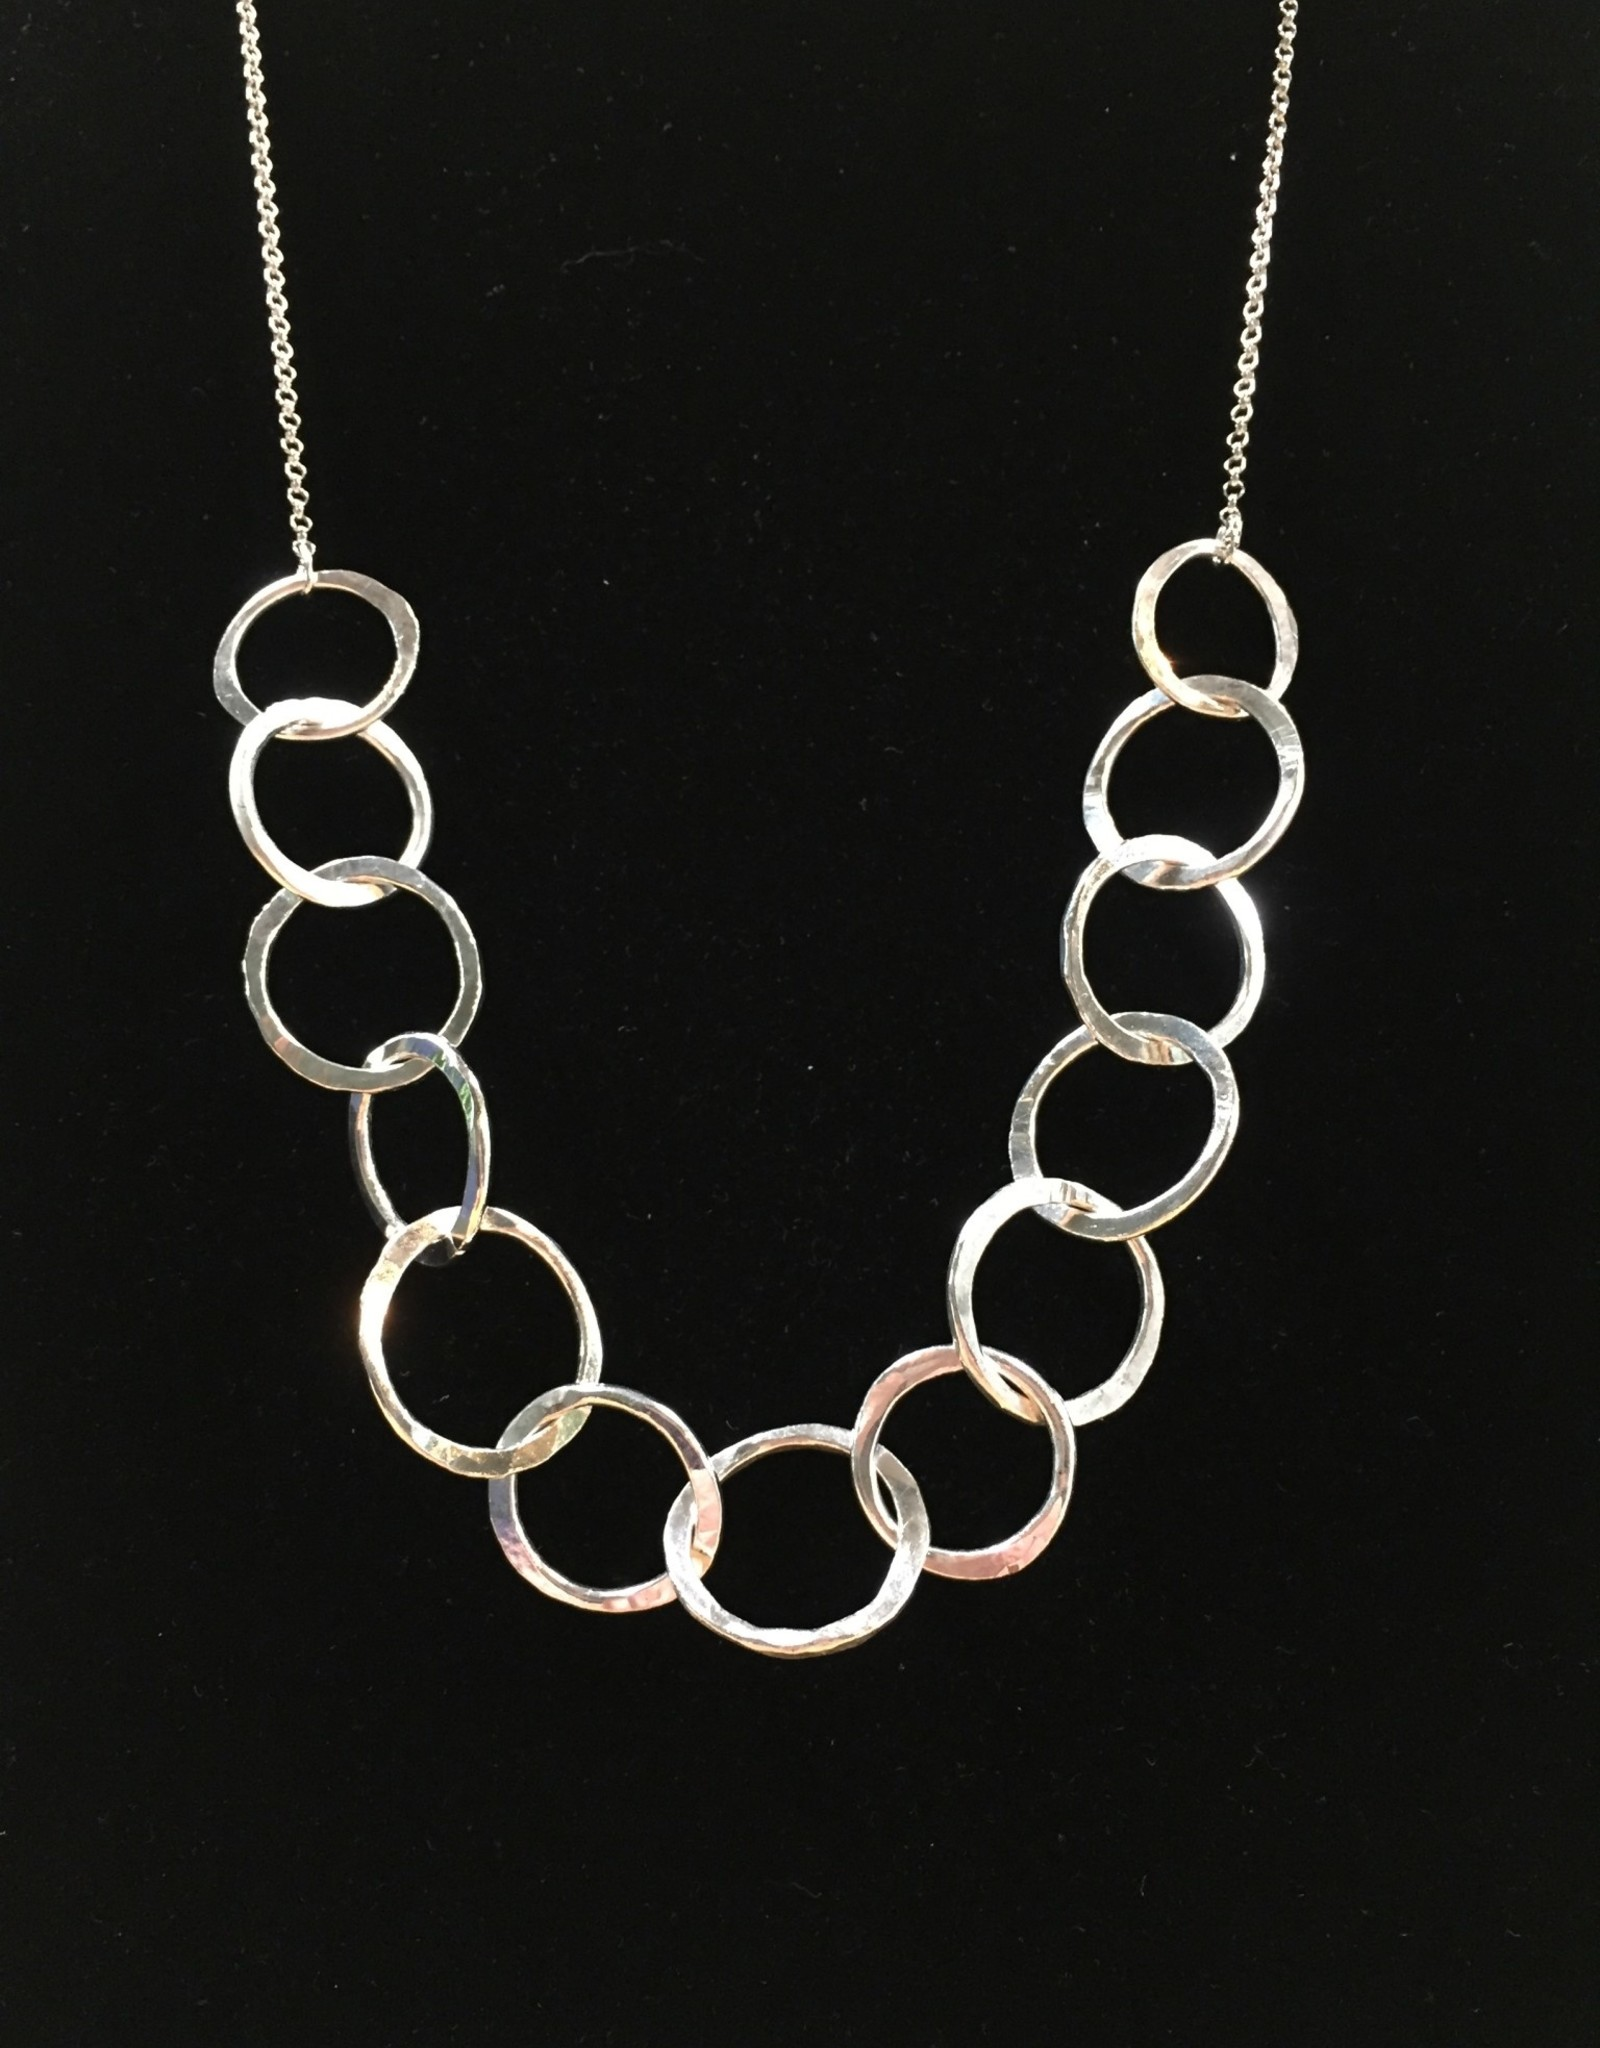 Susan Hunter Bodie/Fine Silver Hand-Fabricated Necklace